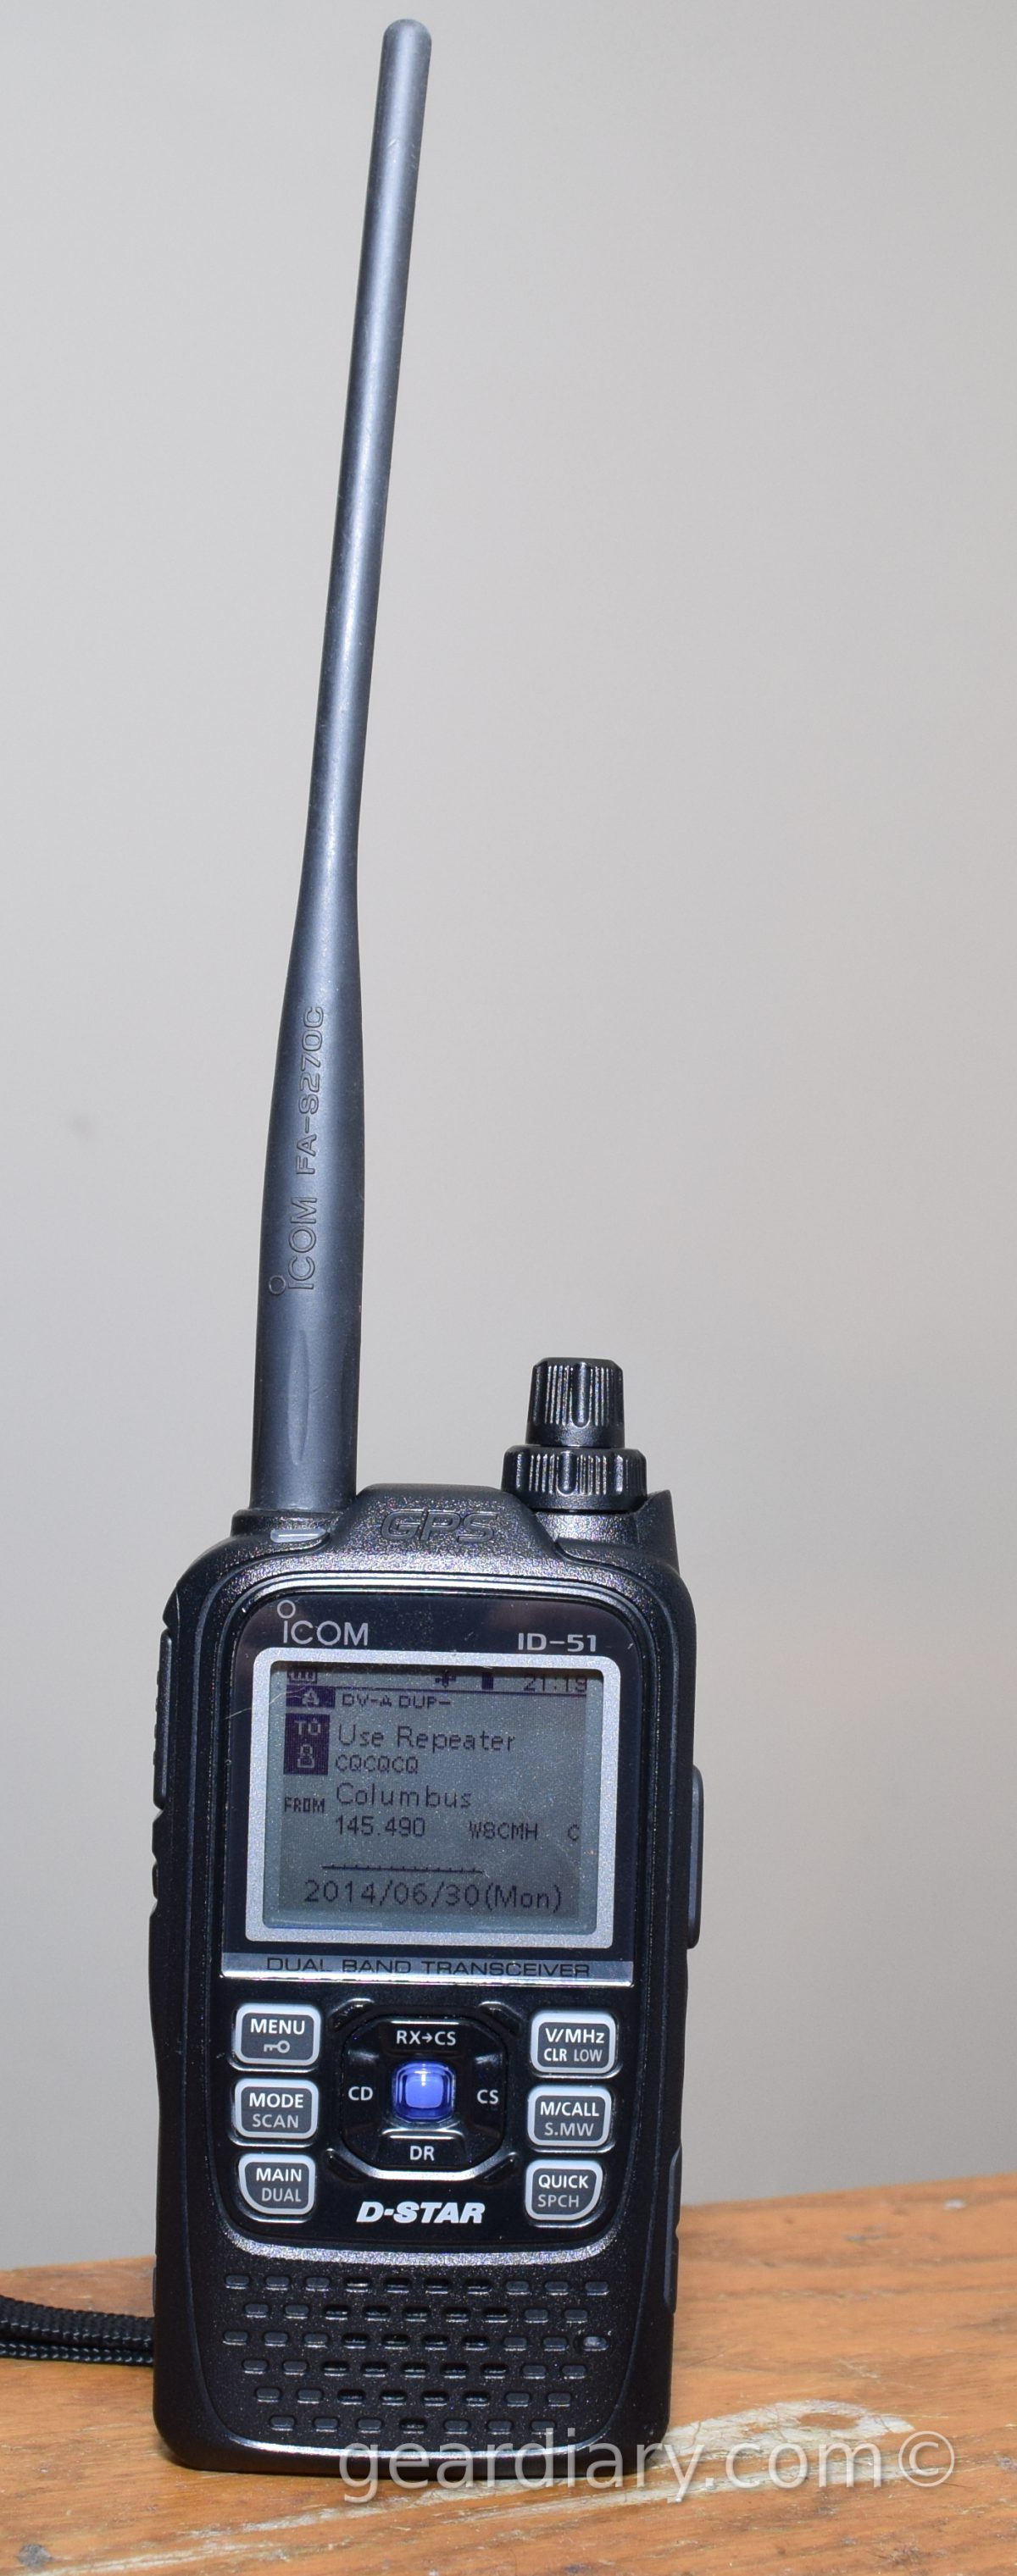 GearDiary Icom ID-51A D-star Radio Review